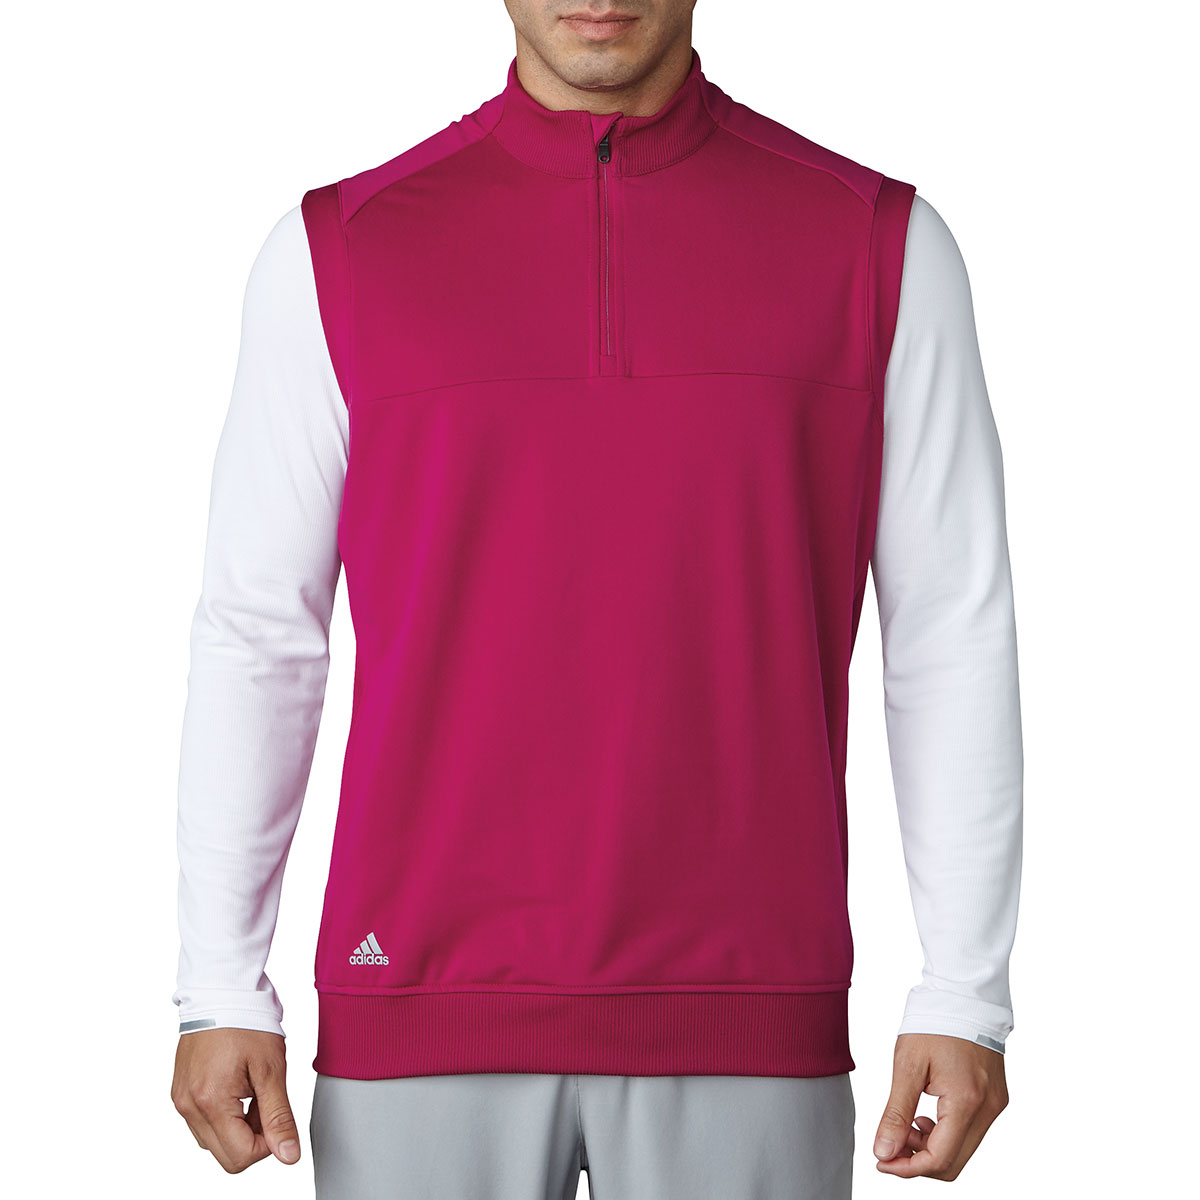 Adidas Golf 2017 Mens 1/4 Zip Club Vest Pullover Stretch ...